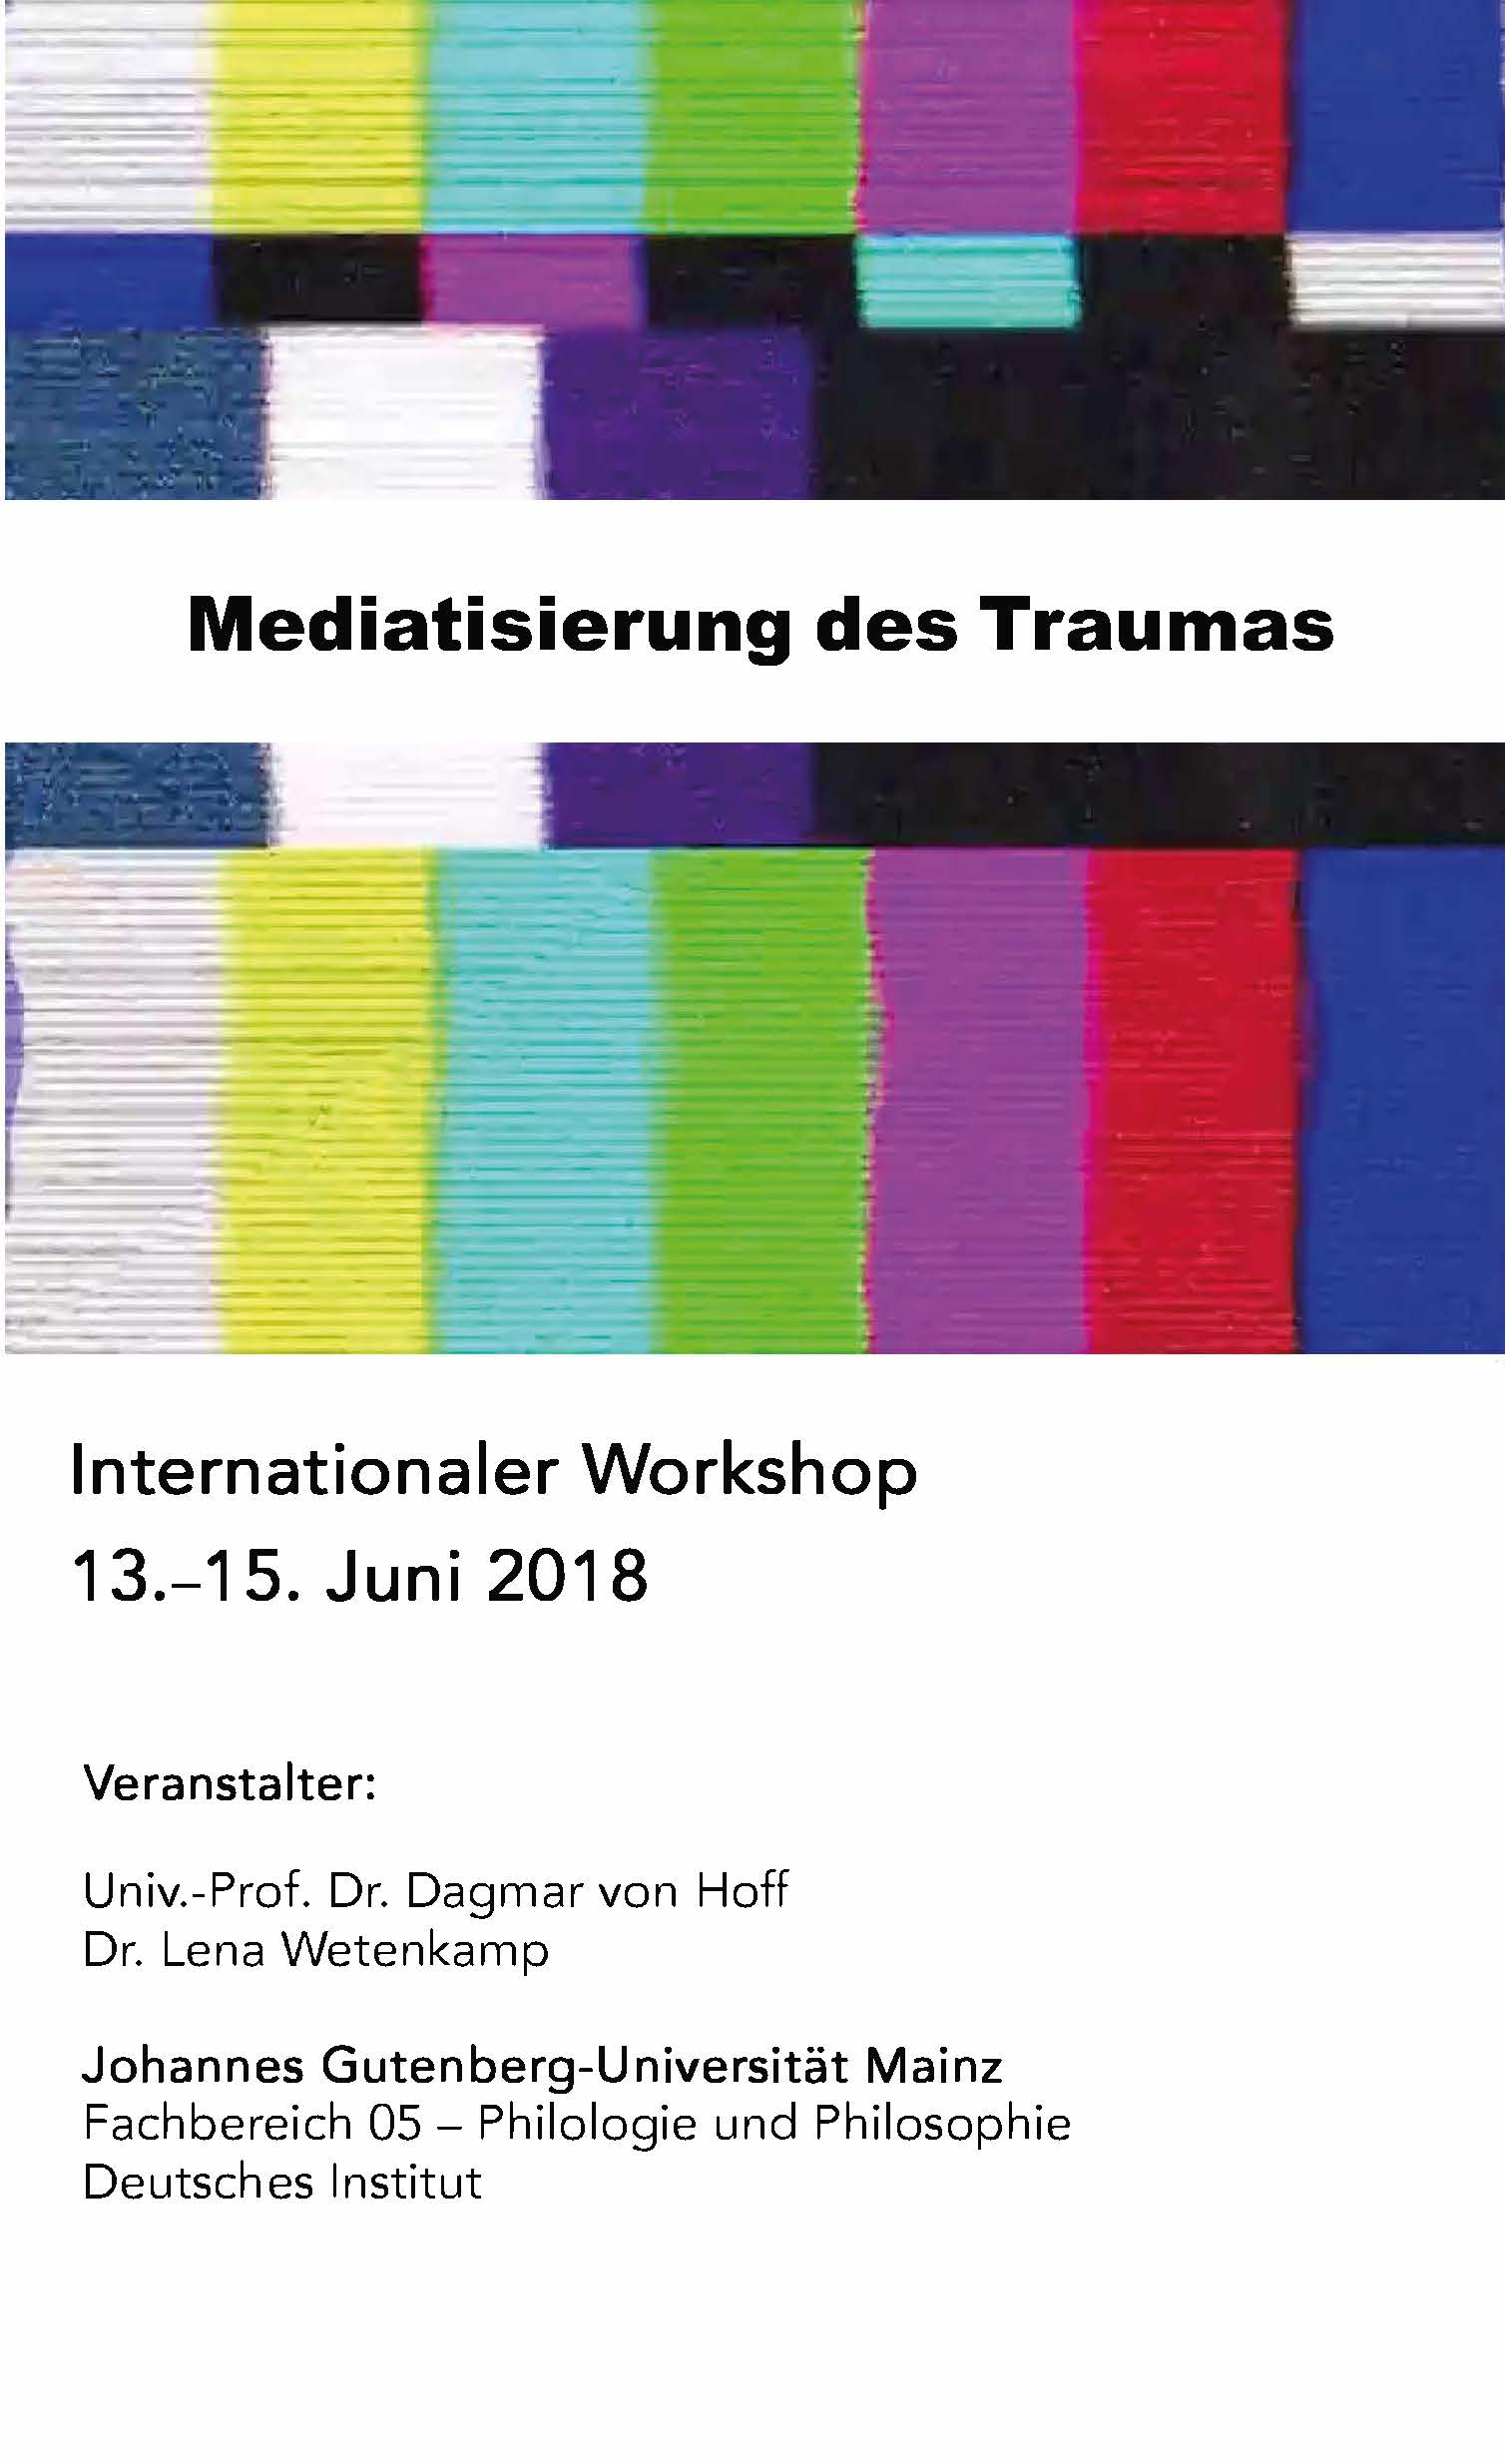 Internationaler Workshop Mediatisierung Des Traumas